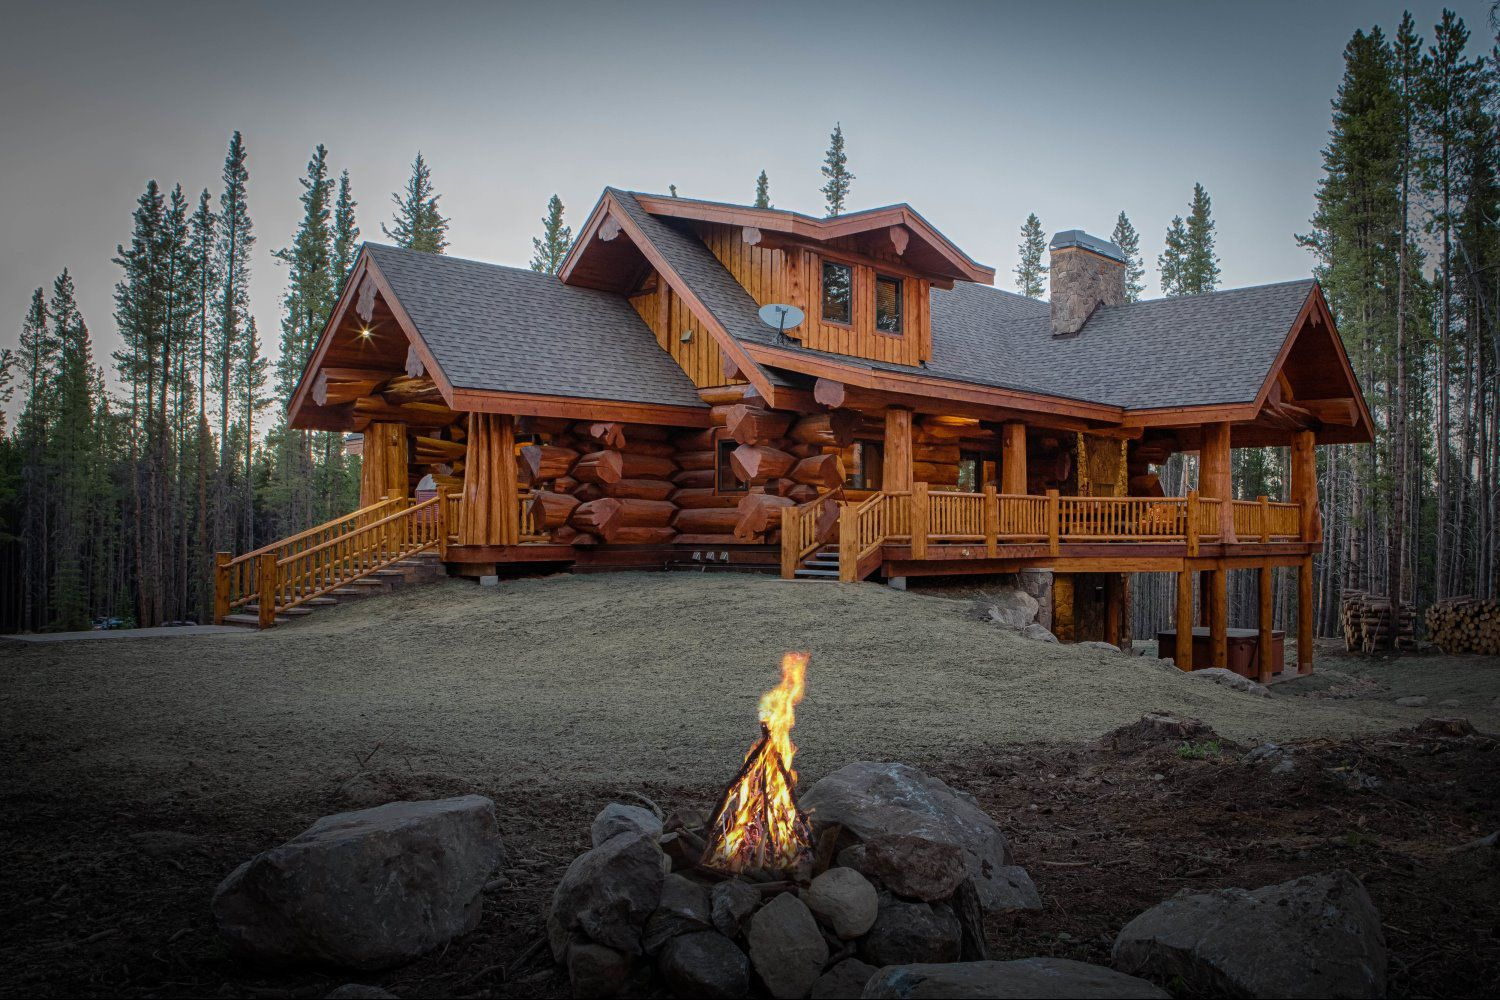 Mountain Log Homes Of Colorado Inc Provides Our Clients With A Unique Business Model That Combines Years High Country Custom Home Building Expertise